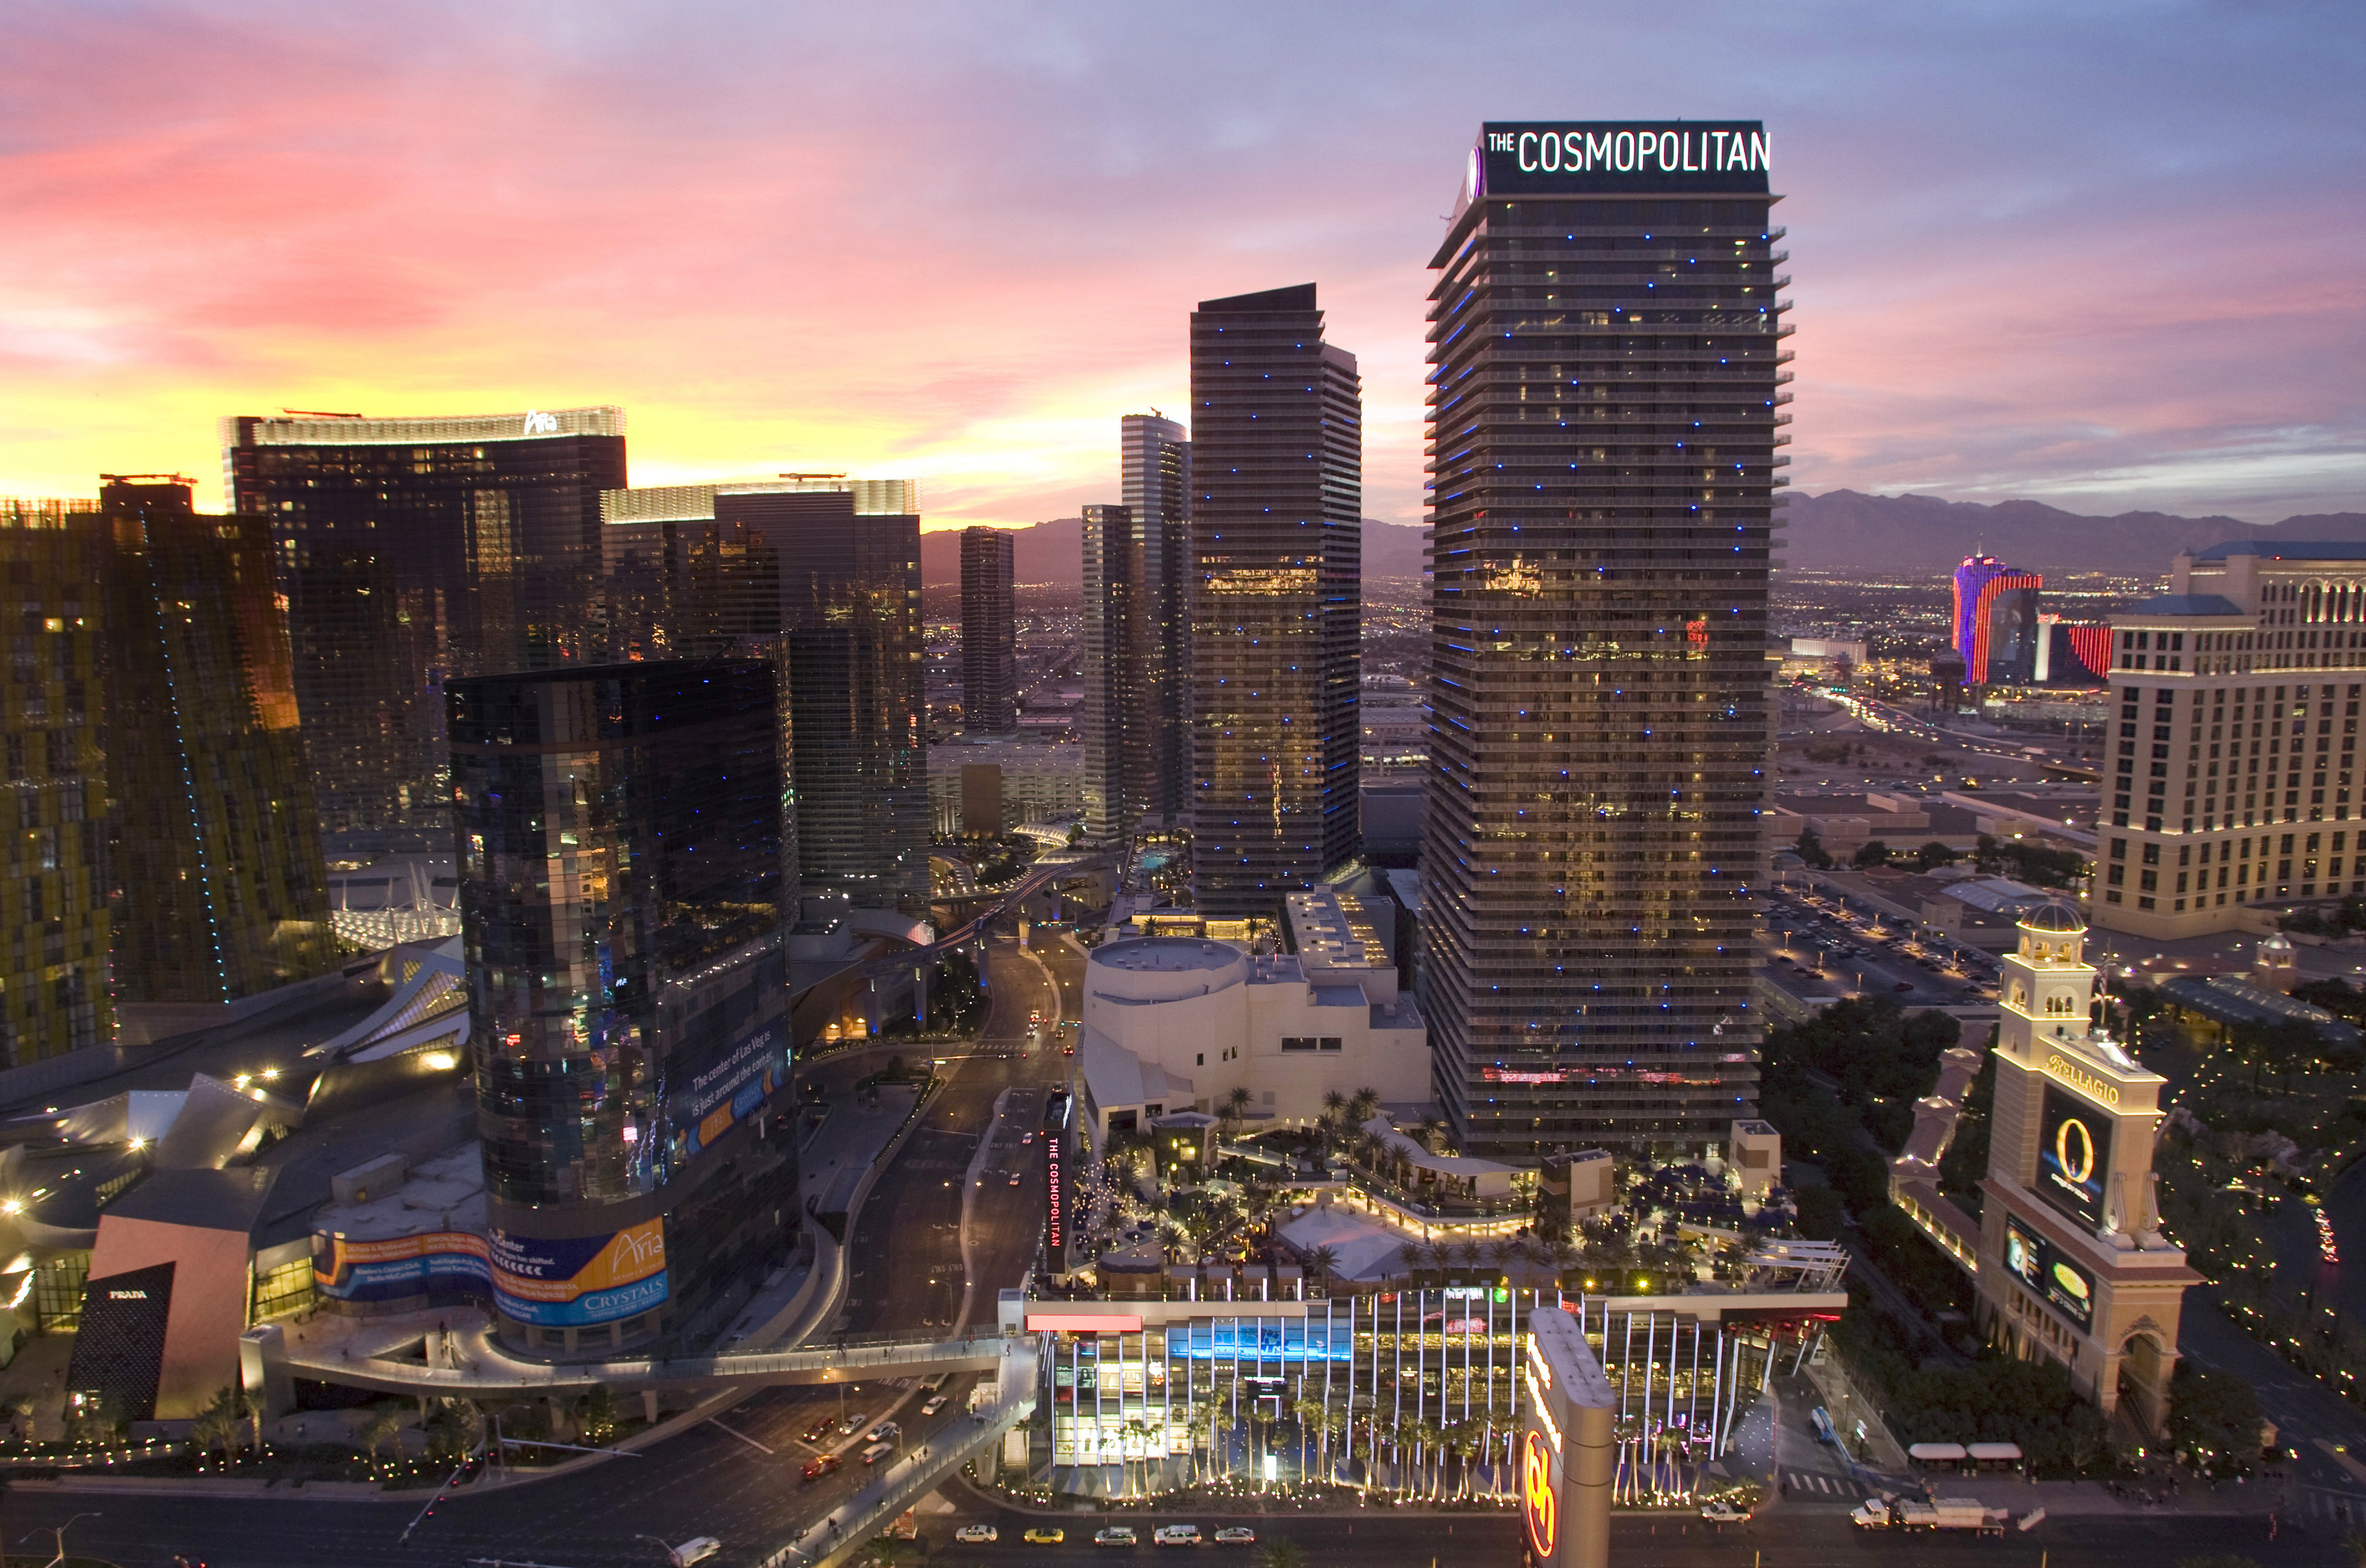 Las Vegas Monorail Cosmopolitan Map What39s The Area Surrounding Your Work Like Ar15com